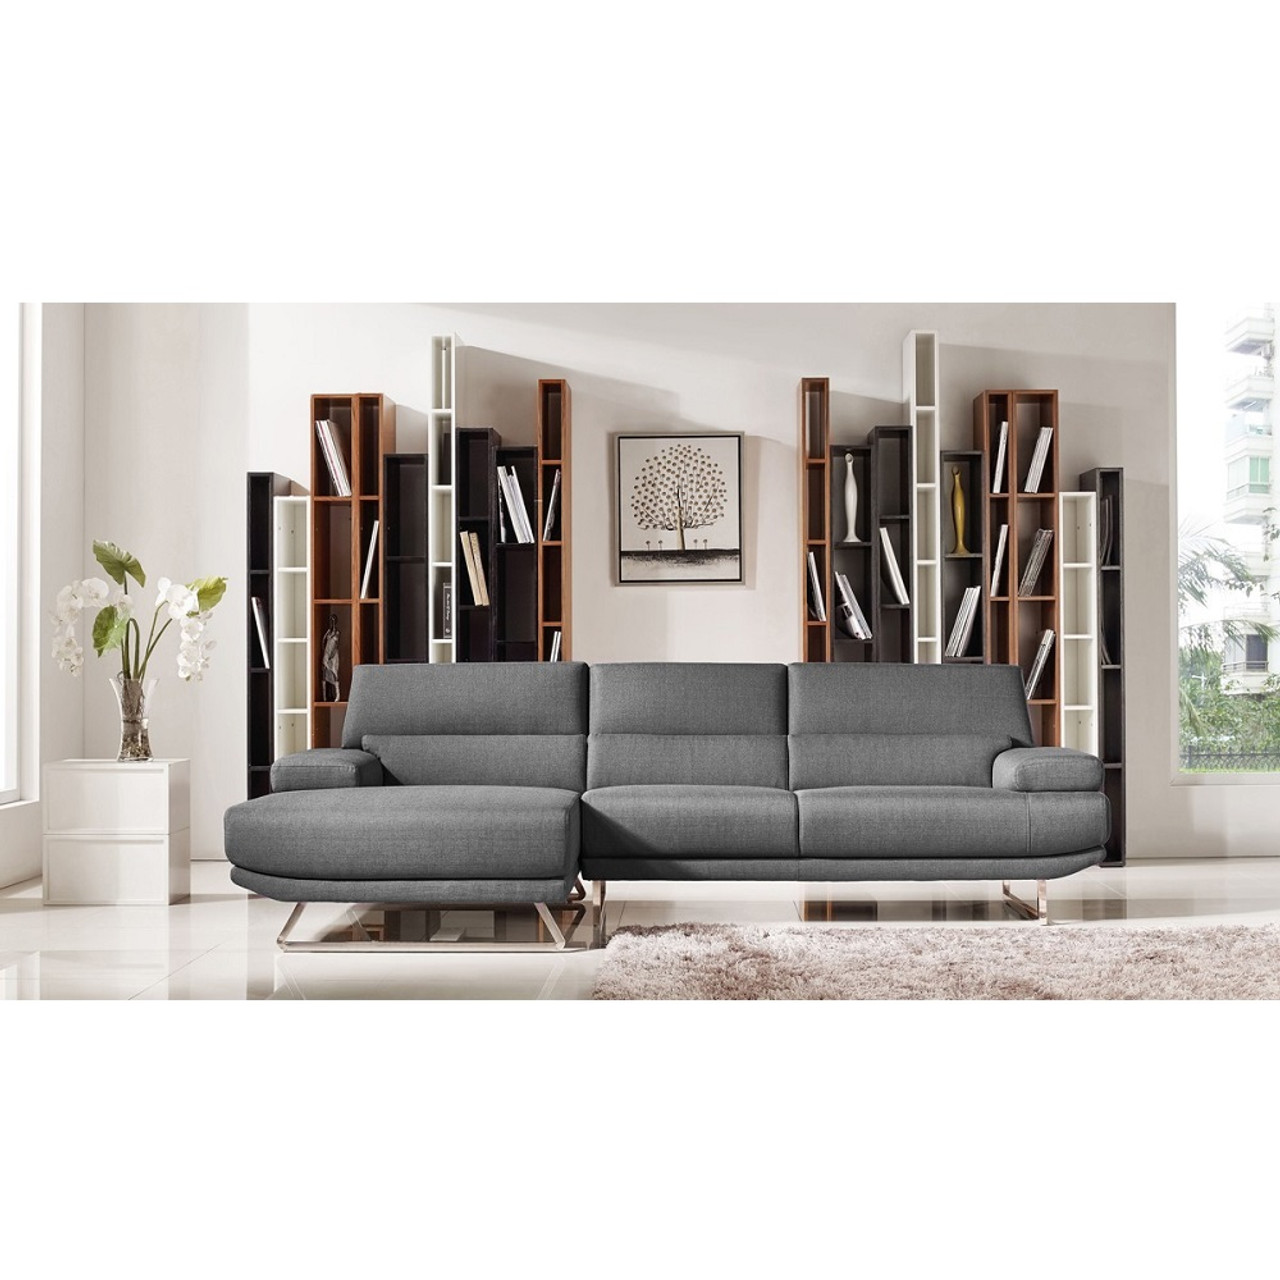 Divani casa trinidad modern grey fabric sectional sofa lounge la